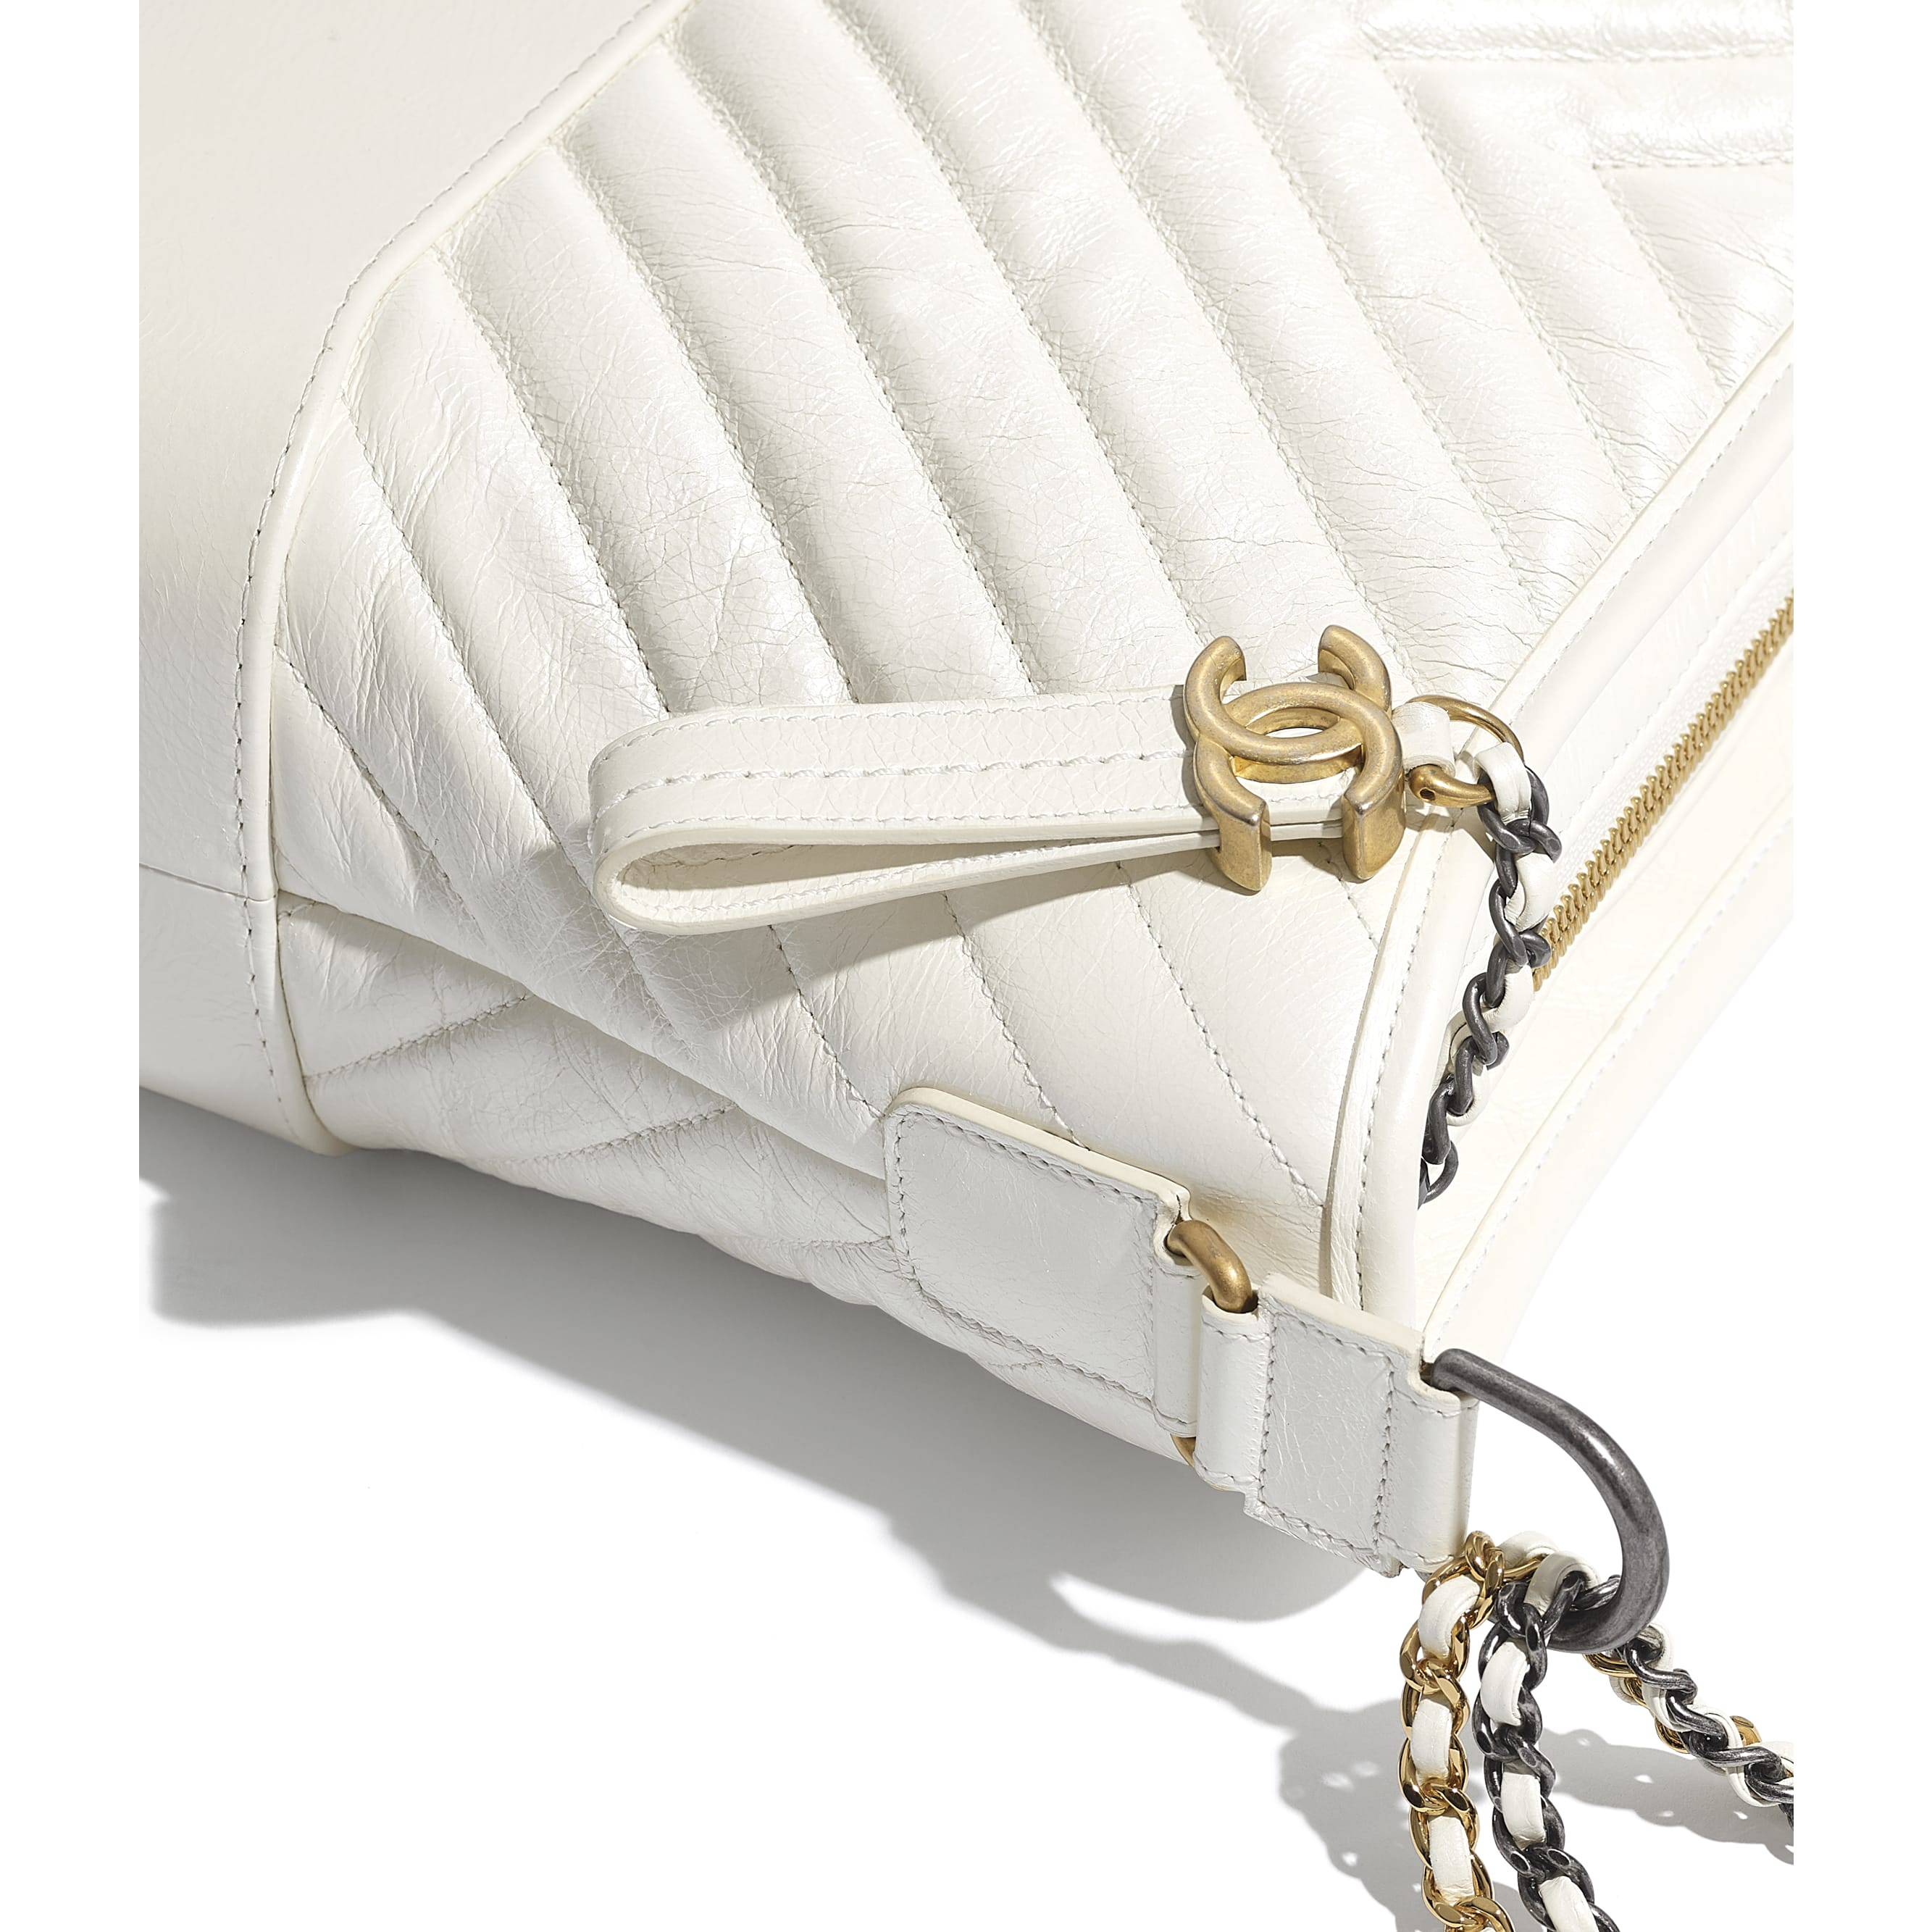 CHANEL'S GABRIELLE Large Hobo Bag - White - Metallic Crumpled Calfskin, Gold-Tone & Silver-Tone Metal - Extra view - see standard sized version